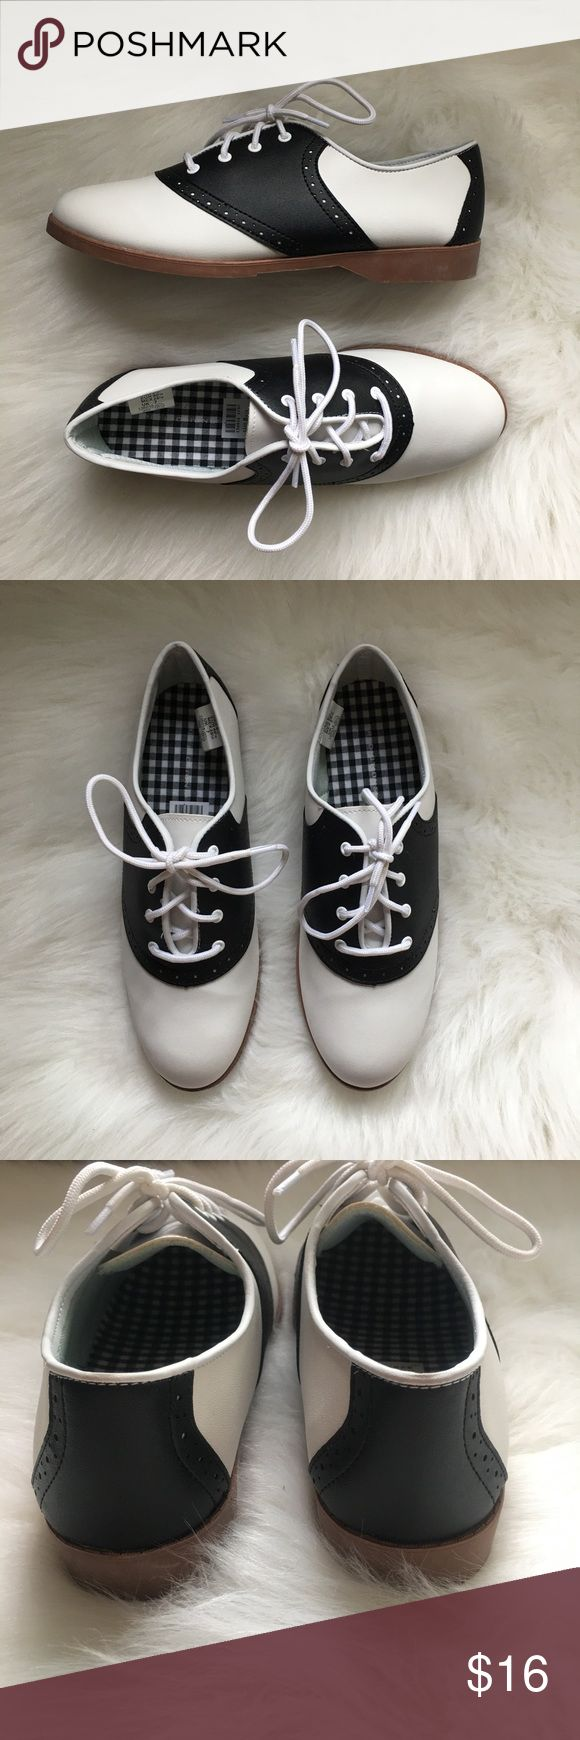 Black & White Saddle Shoes NWT Brand new saddle style shoes. Oxfords. 40s style, swing dancing shoes. Skid resistant so great for waitressing, dancing, or musical theater. Size 8.5. Predictions Shoes Flats & Loafers